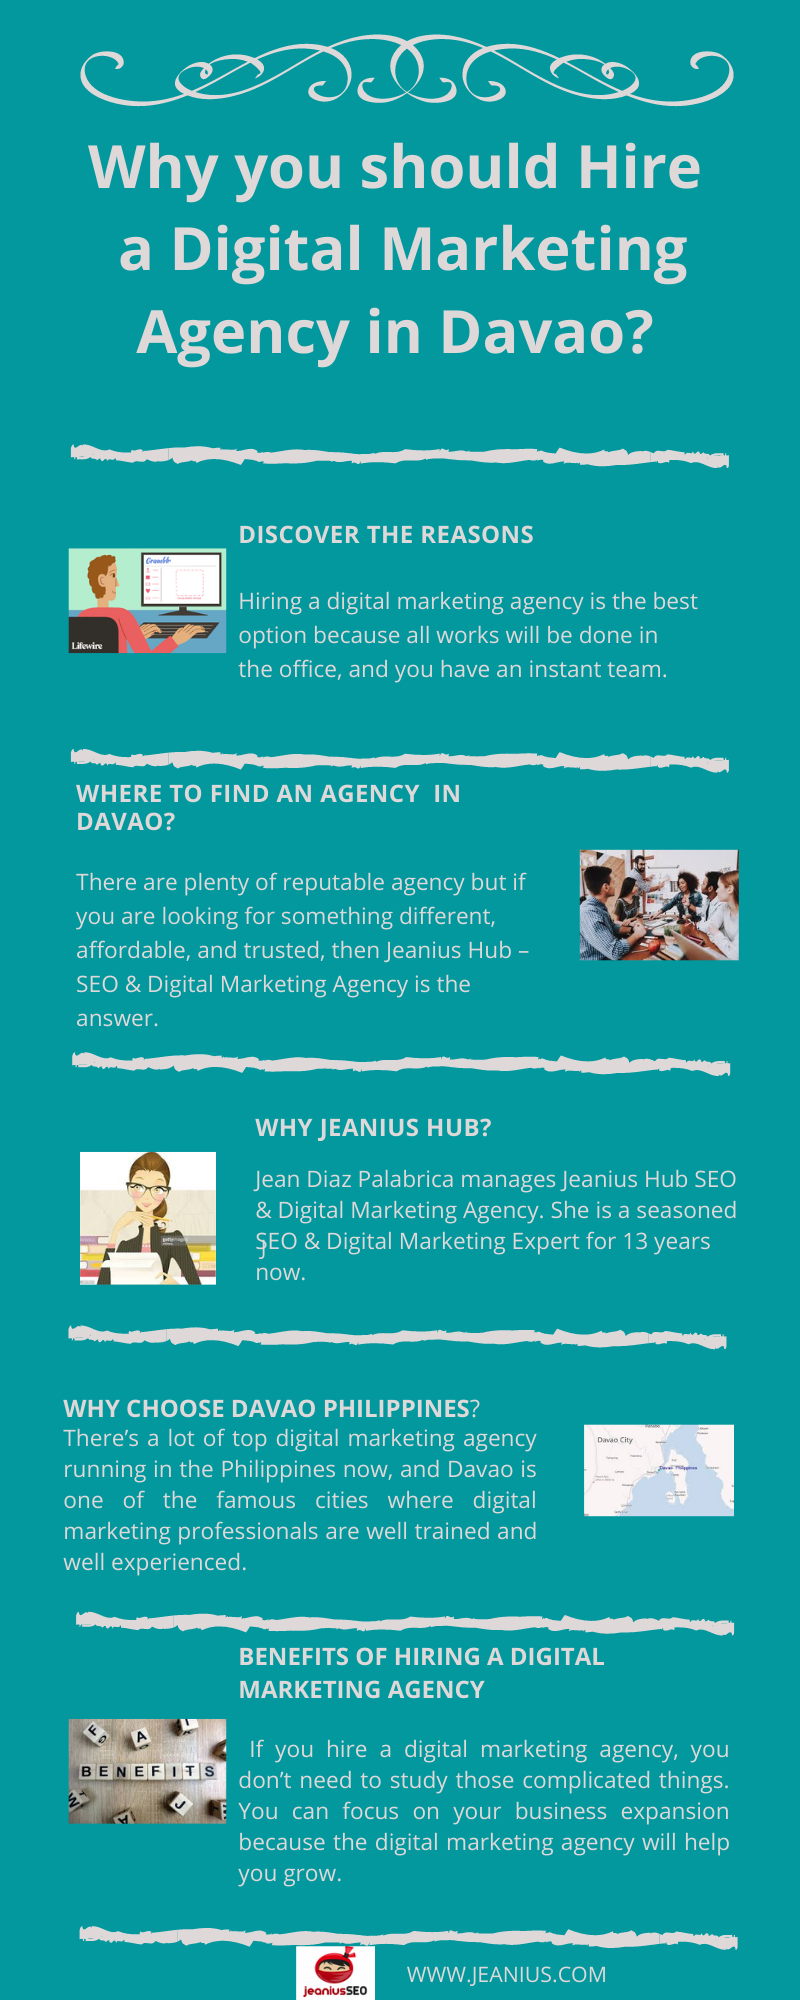 Why you hire a Digital Marketing Agency in Davao